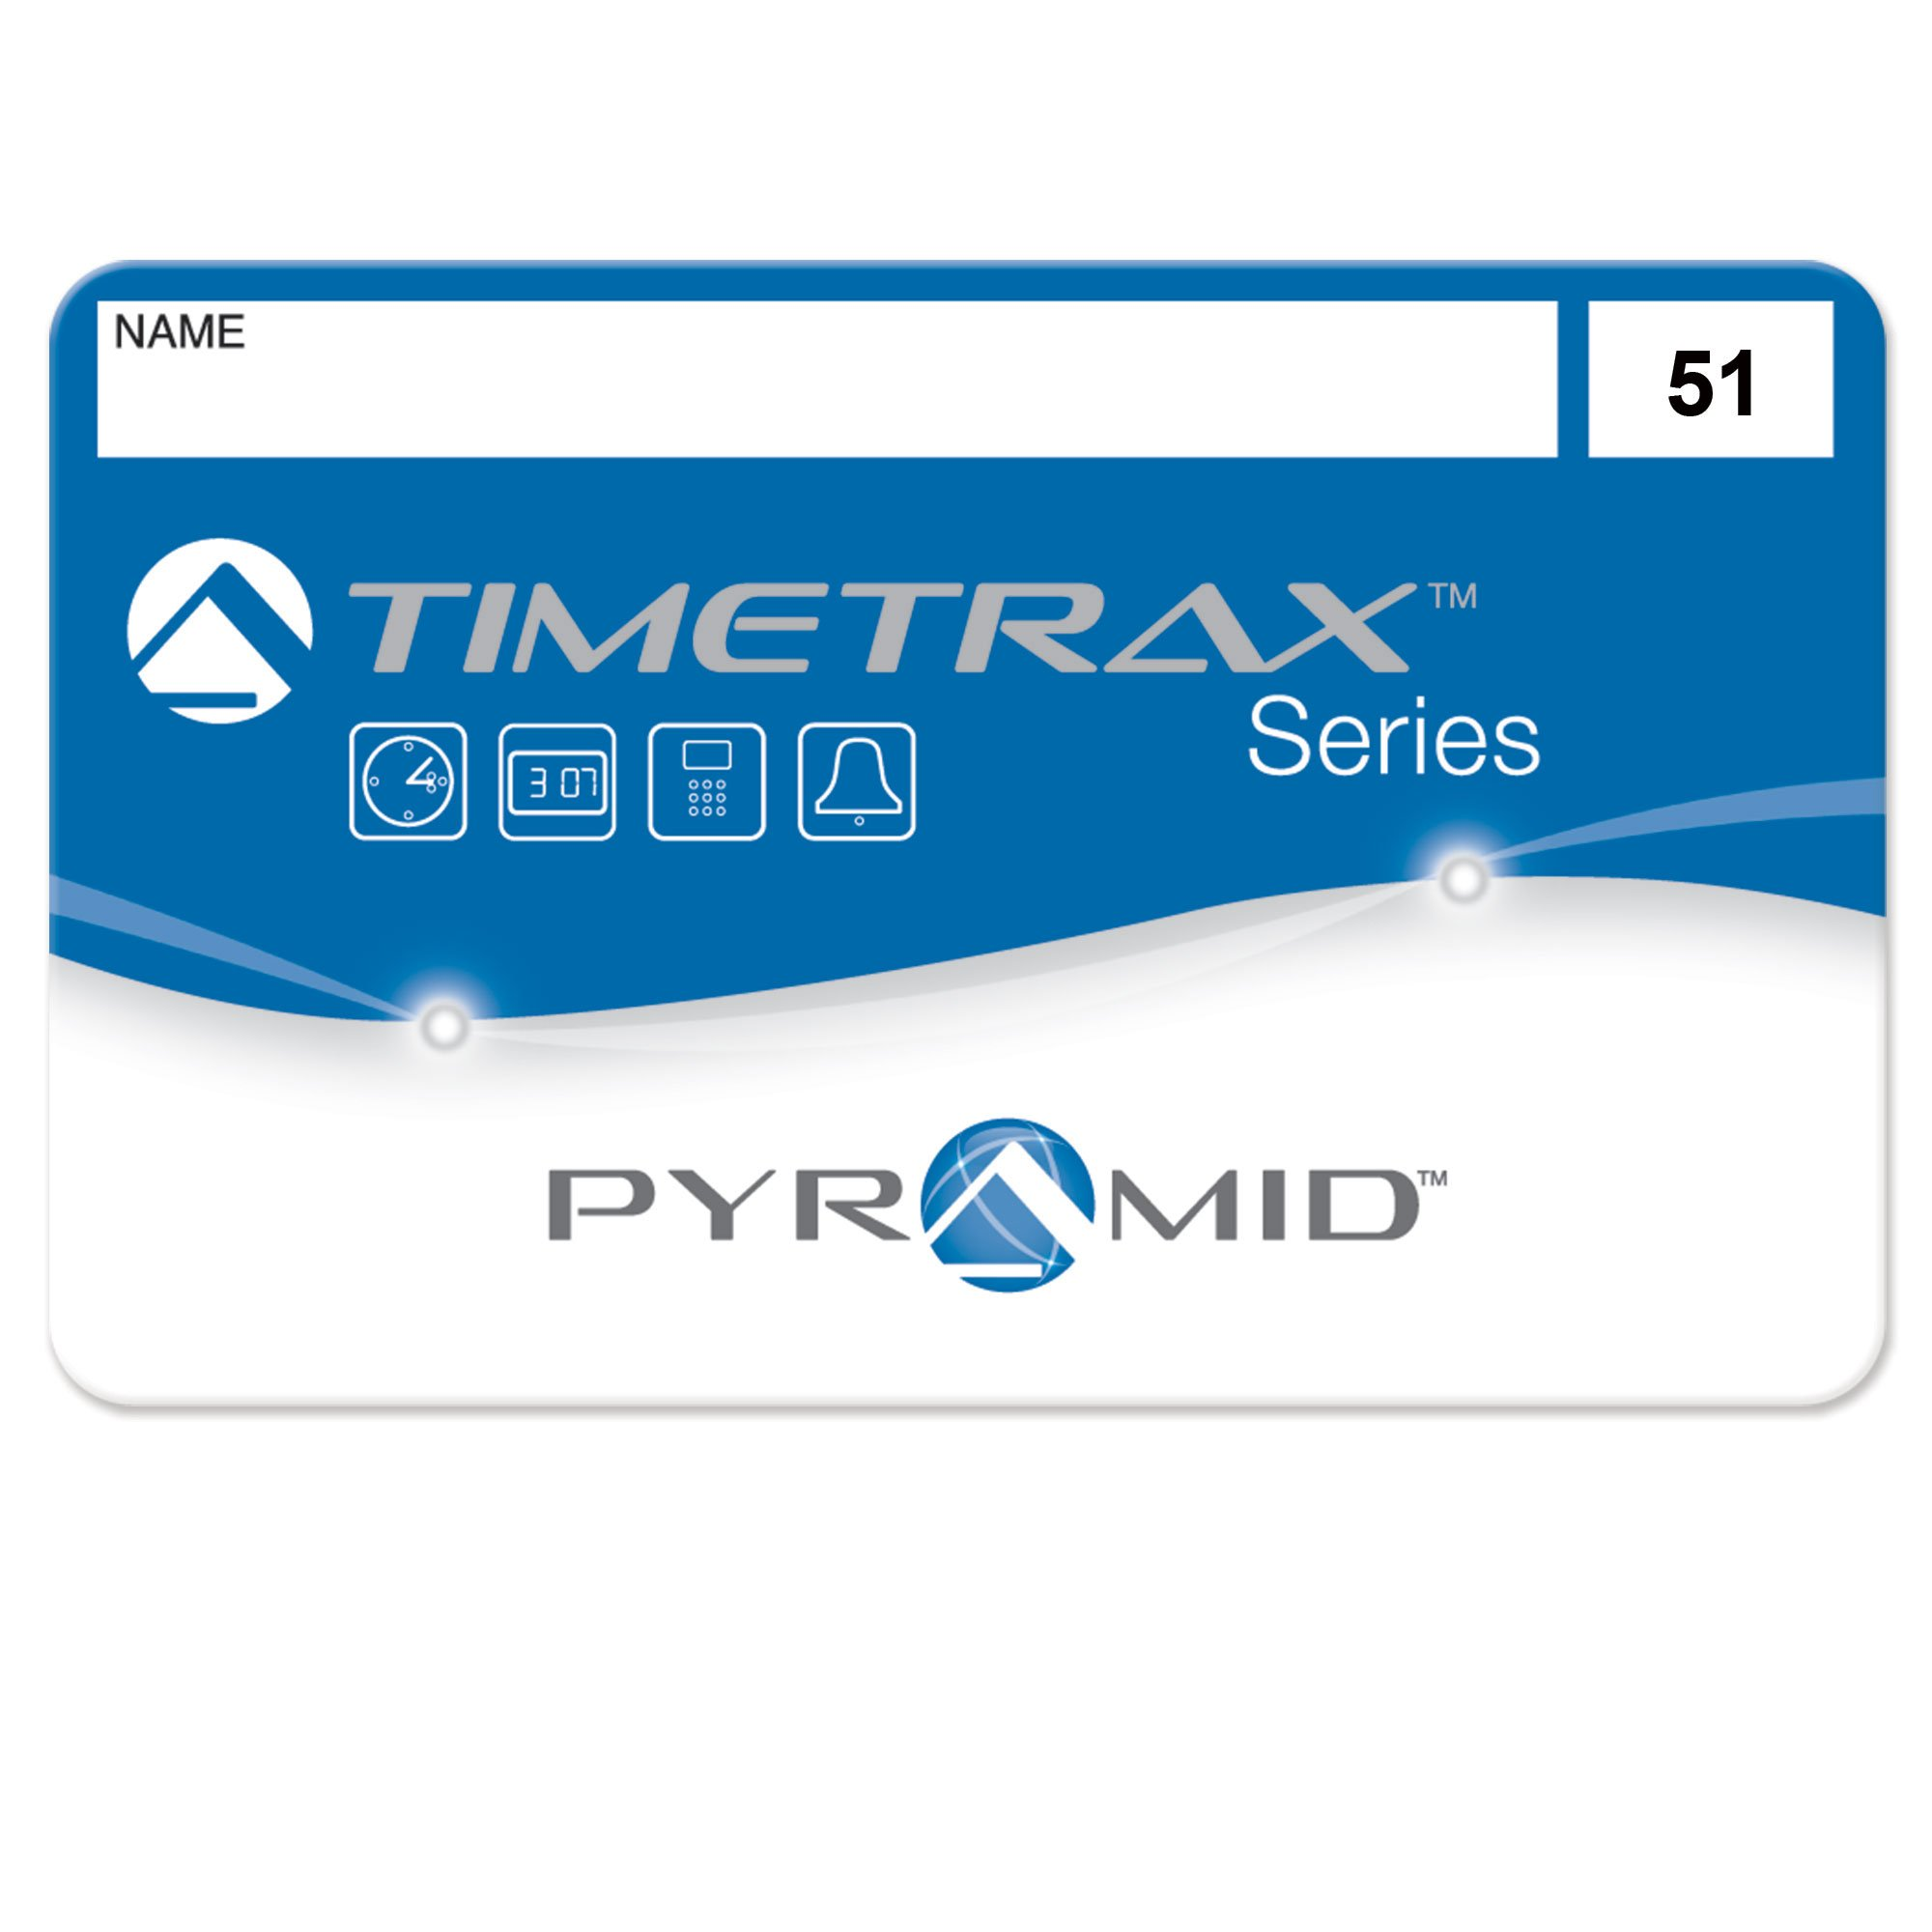 Pyramid TimeTrax 41304 Swipe Cards (51-100) for TTEZ, TTEZEK, PSDLAUBKK, TTPRO, TTMOBILE, FASTTIME 8000 & 9000 Time Clock Systems, 50/Pk by Pyramid Time Systems